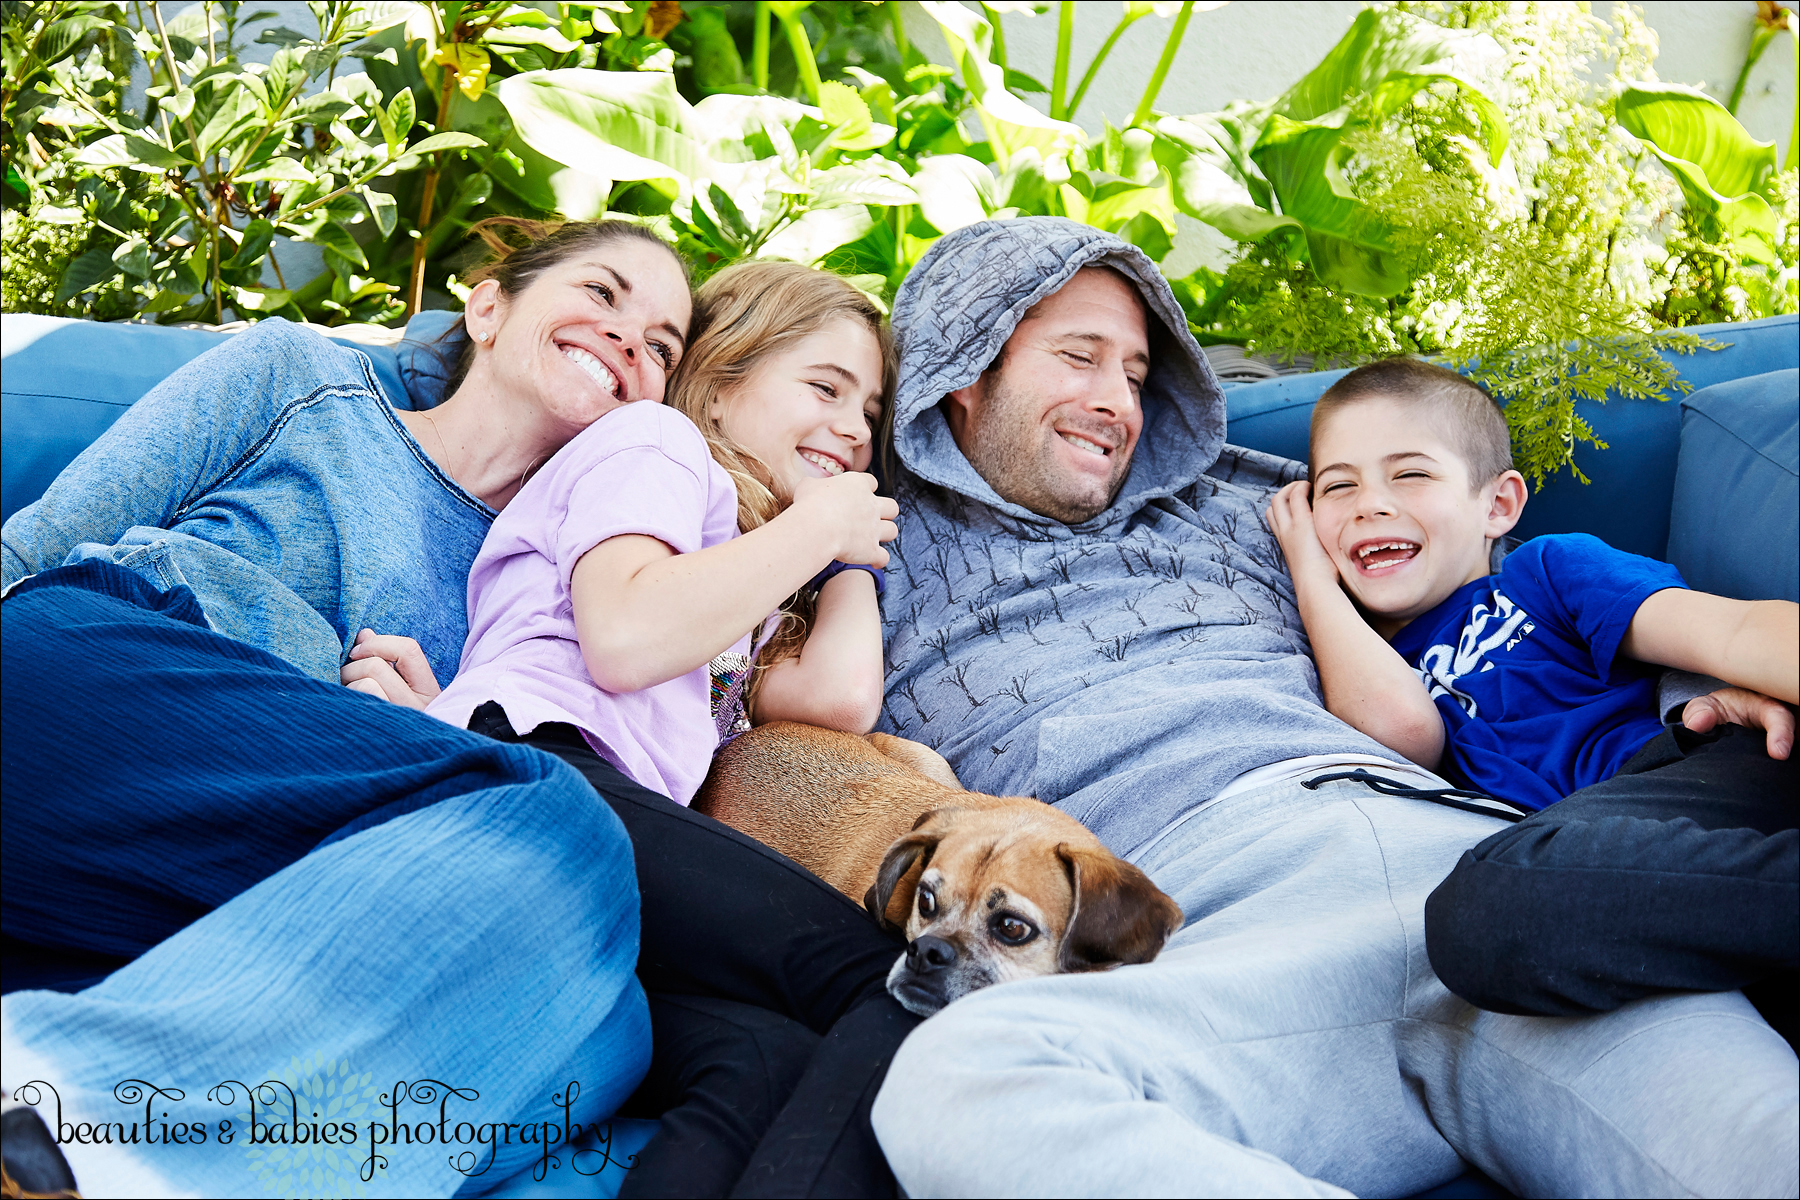 Home quarantine Los Angeles family and kids photographer professional pictures